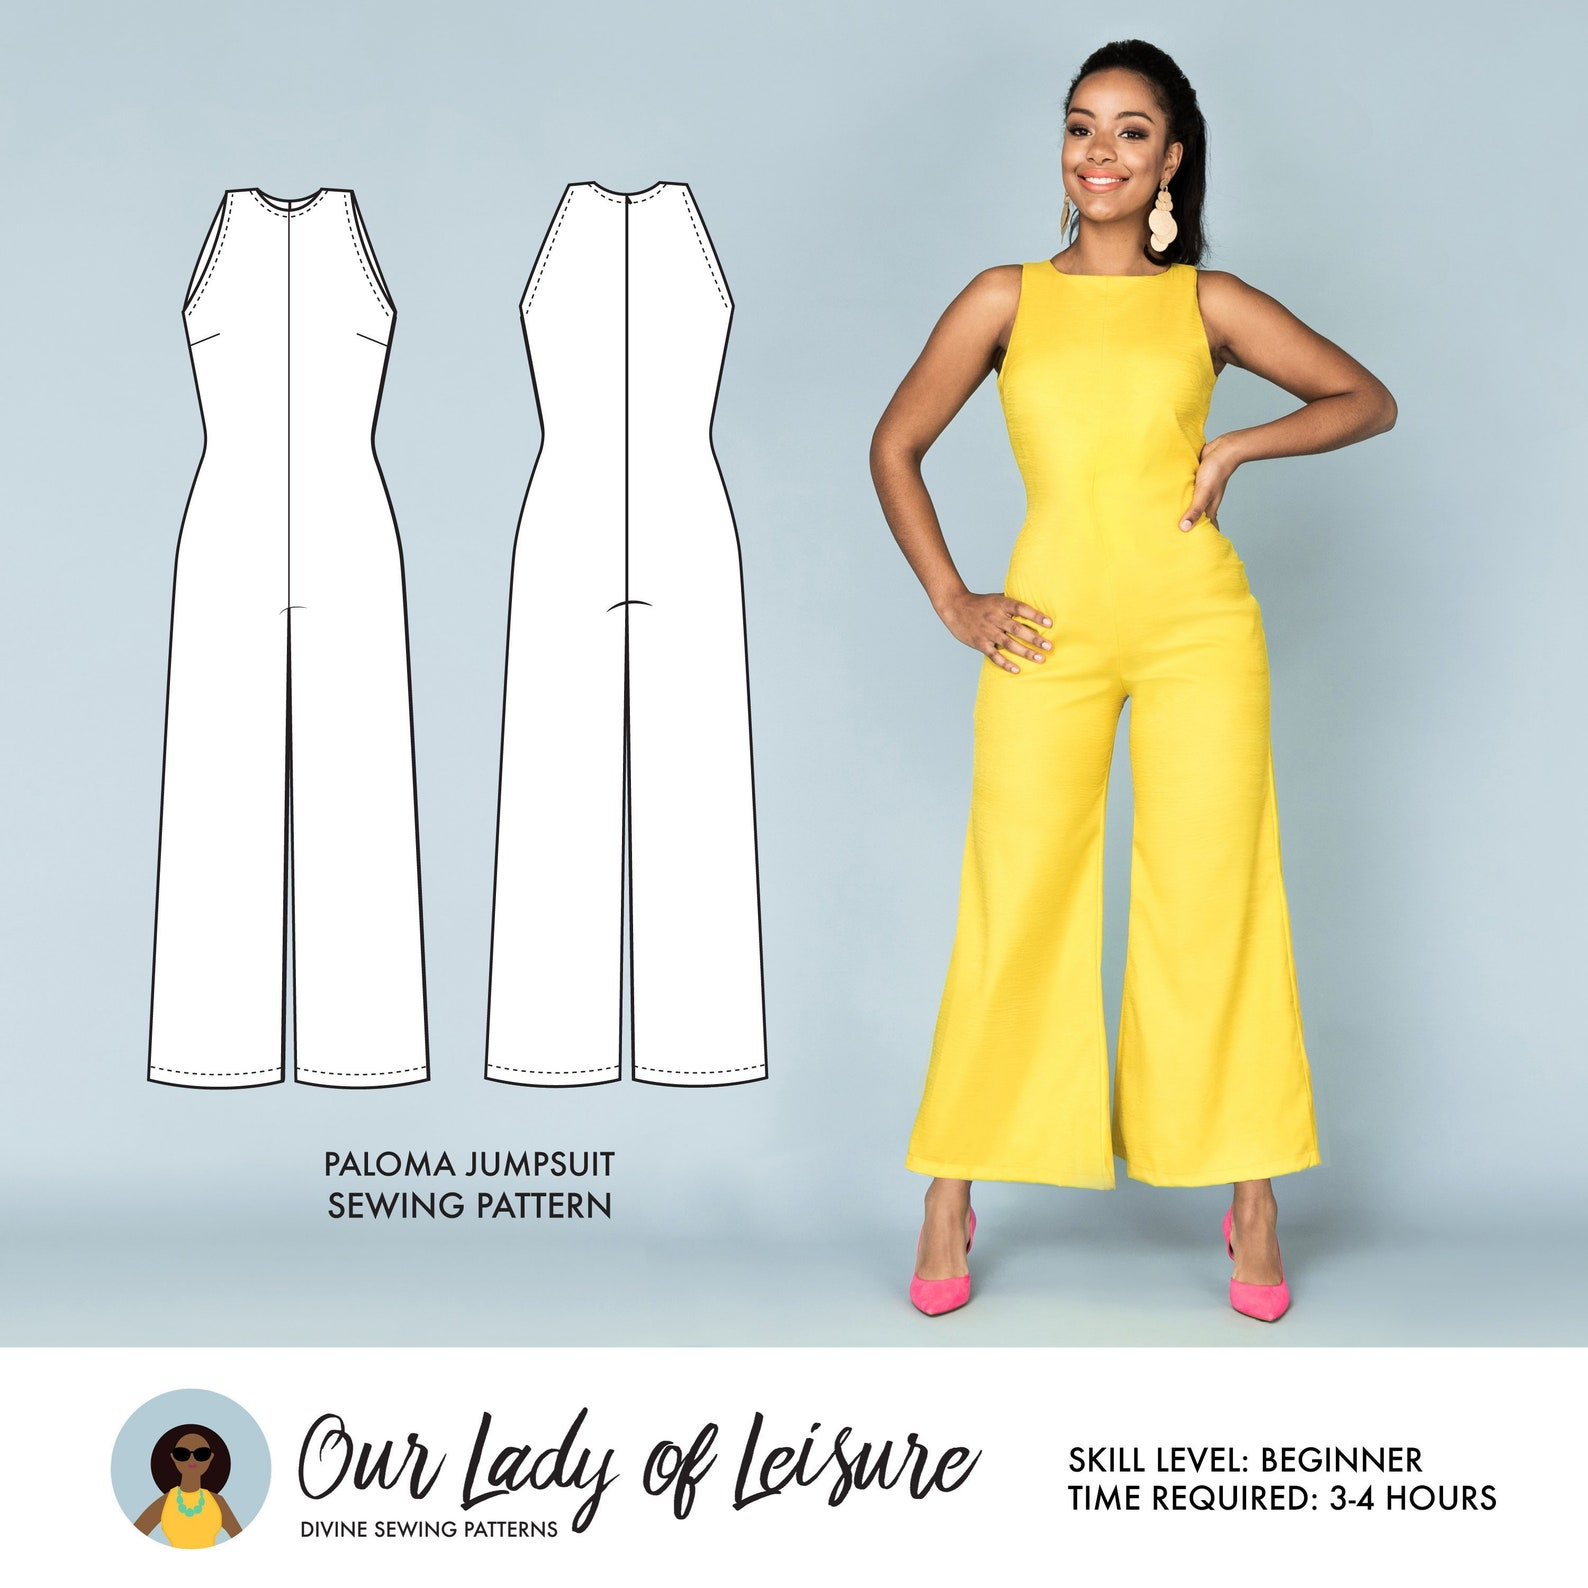 Paloma // Wide Leg Jumpsuit Pattern. Palazzo Jumpsuit for Beginner Sewing.